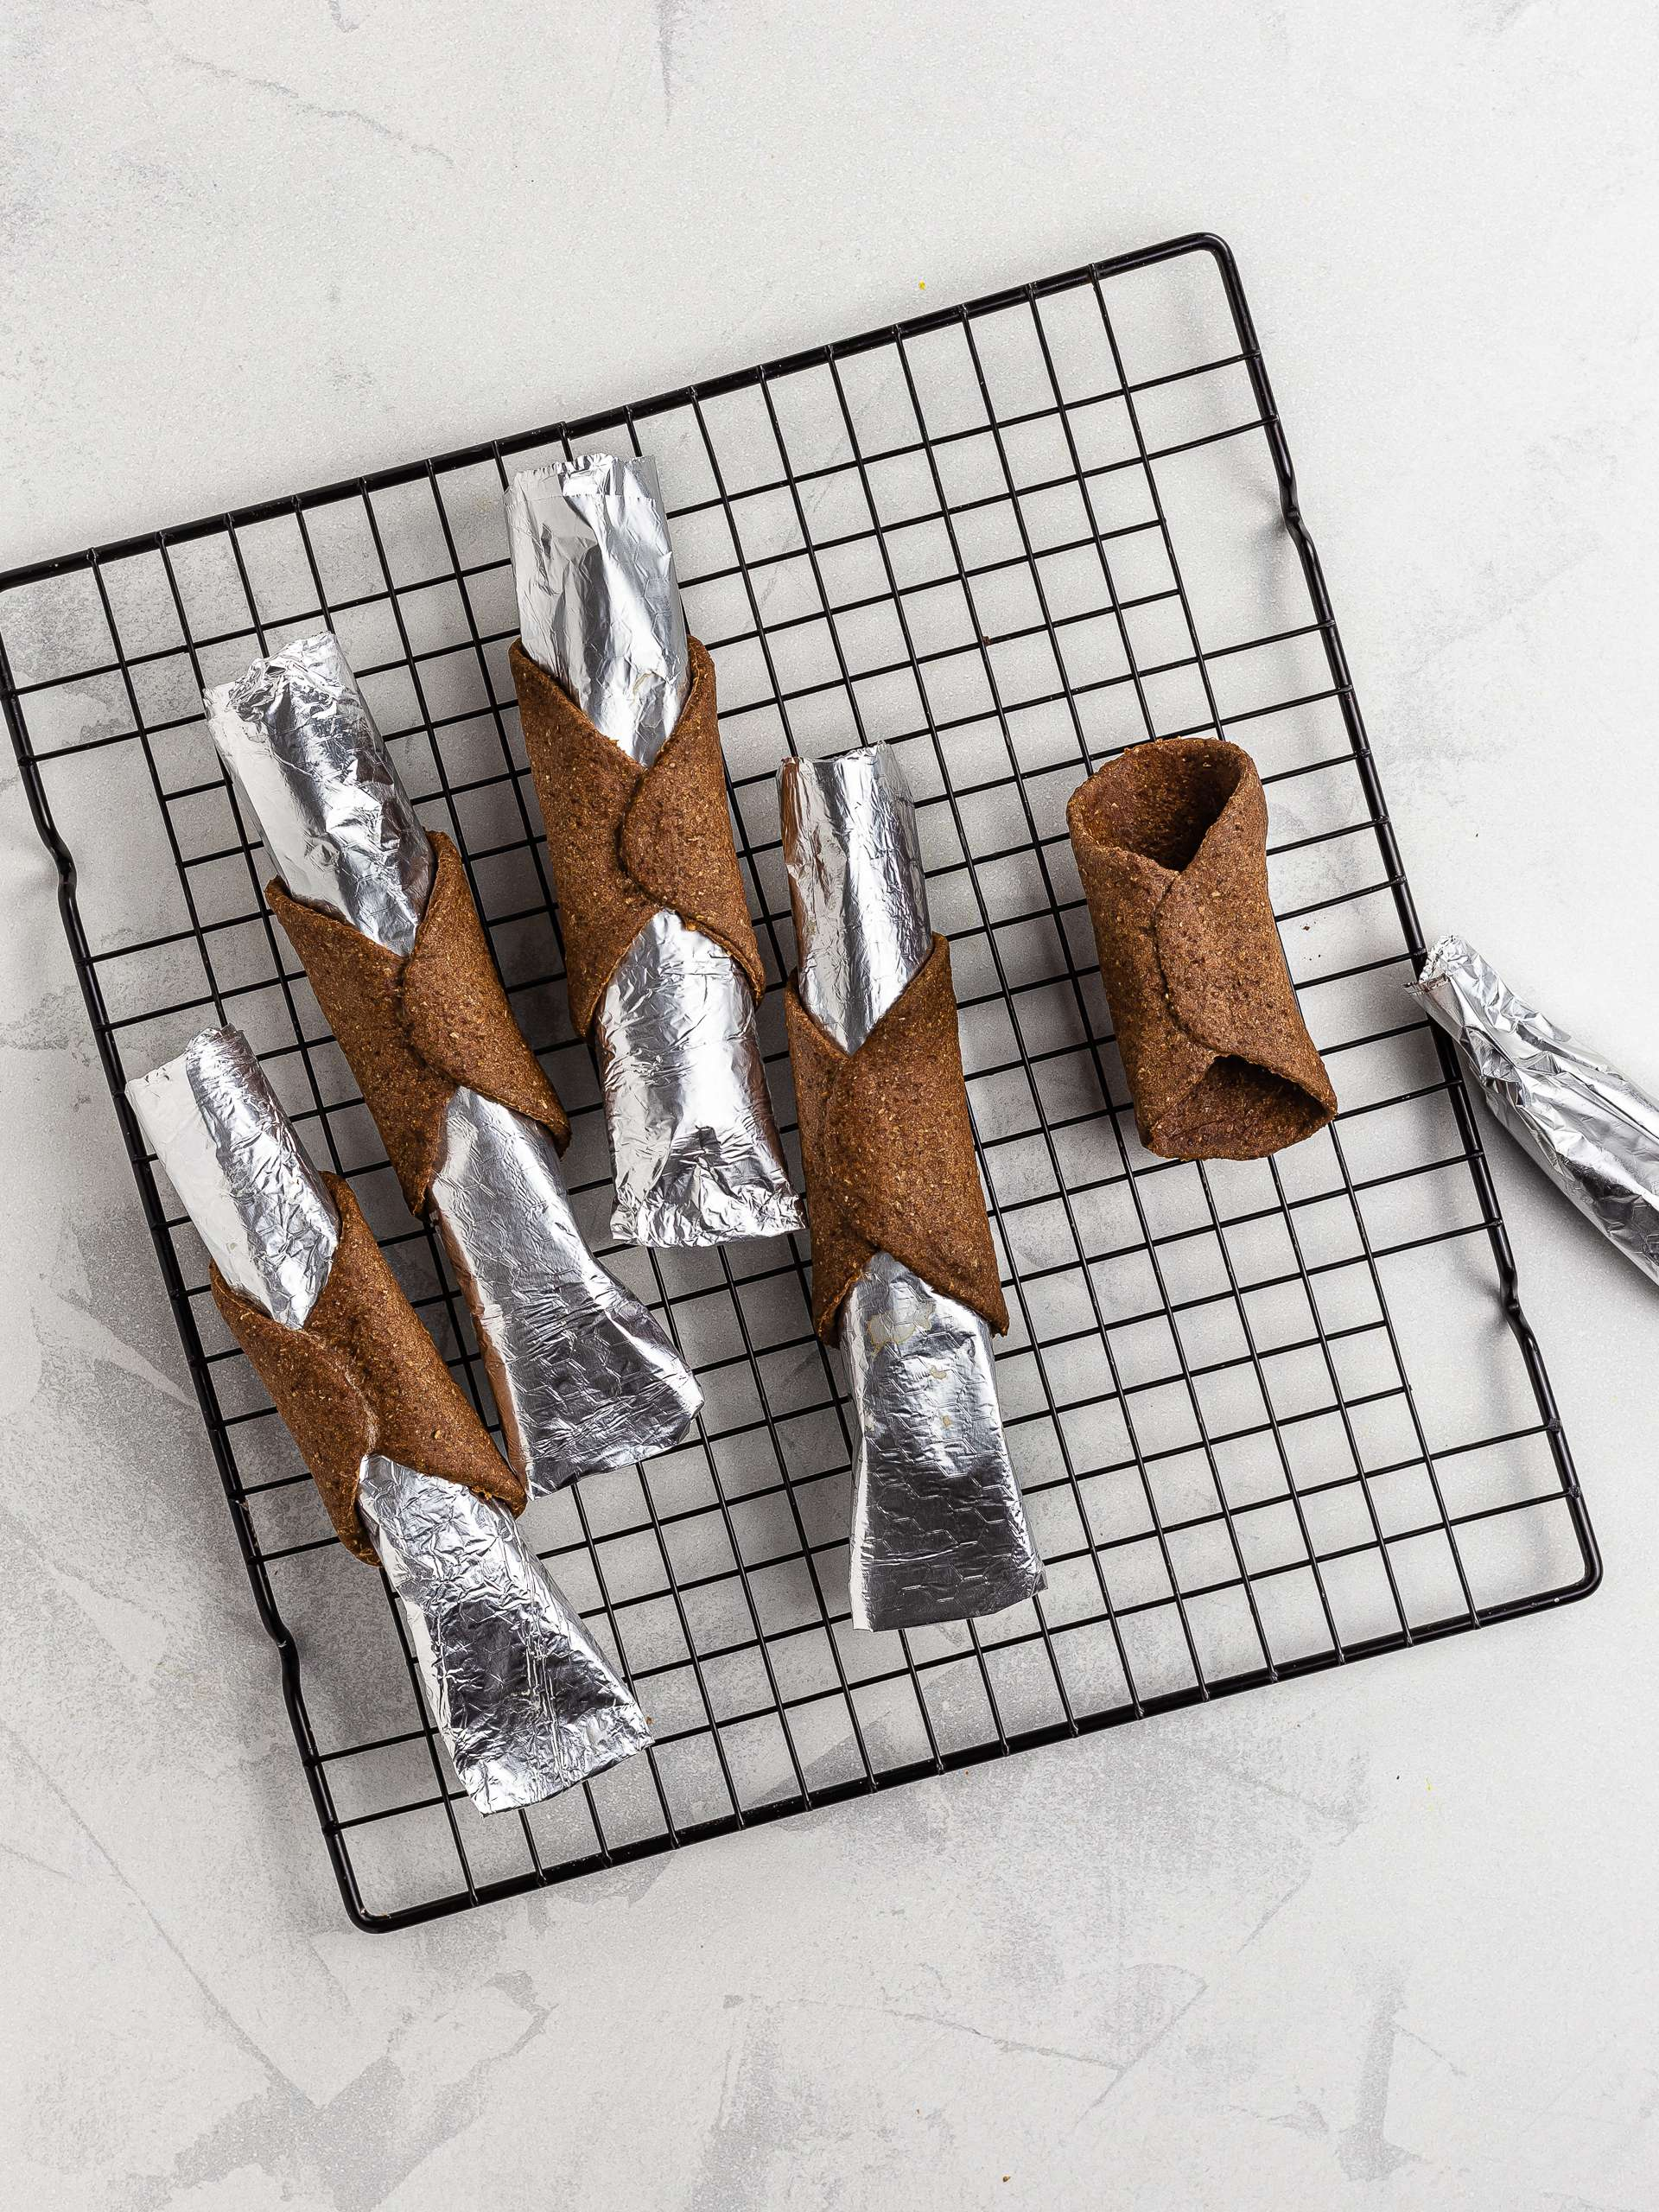 oven-baked vegan cannoli shells cooling on a wire rack